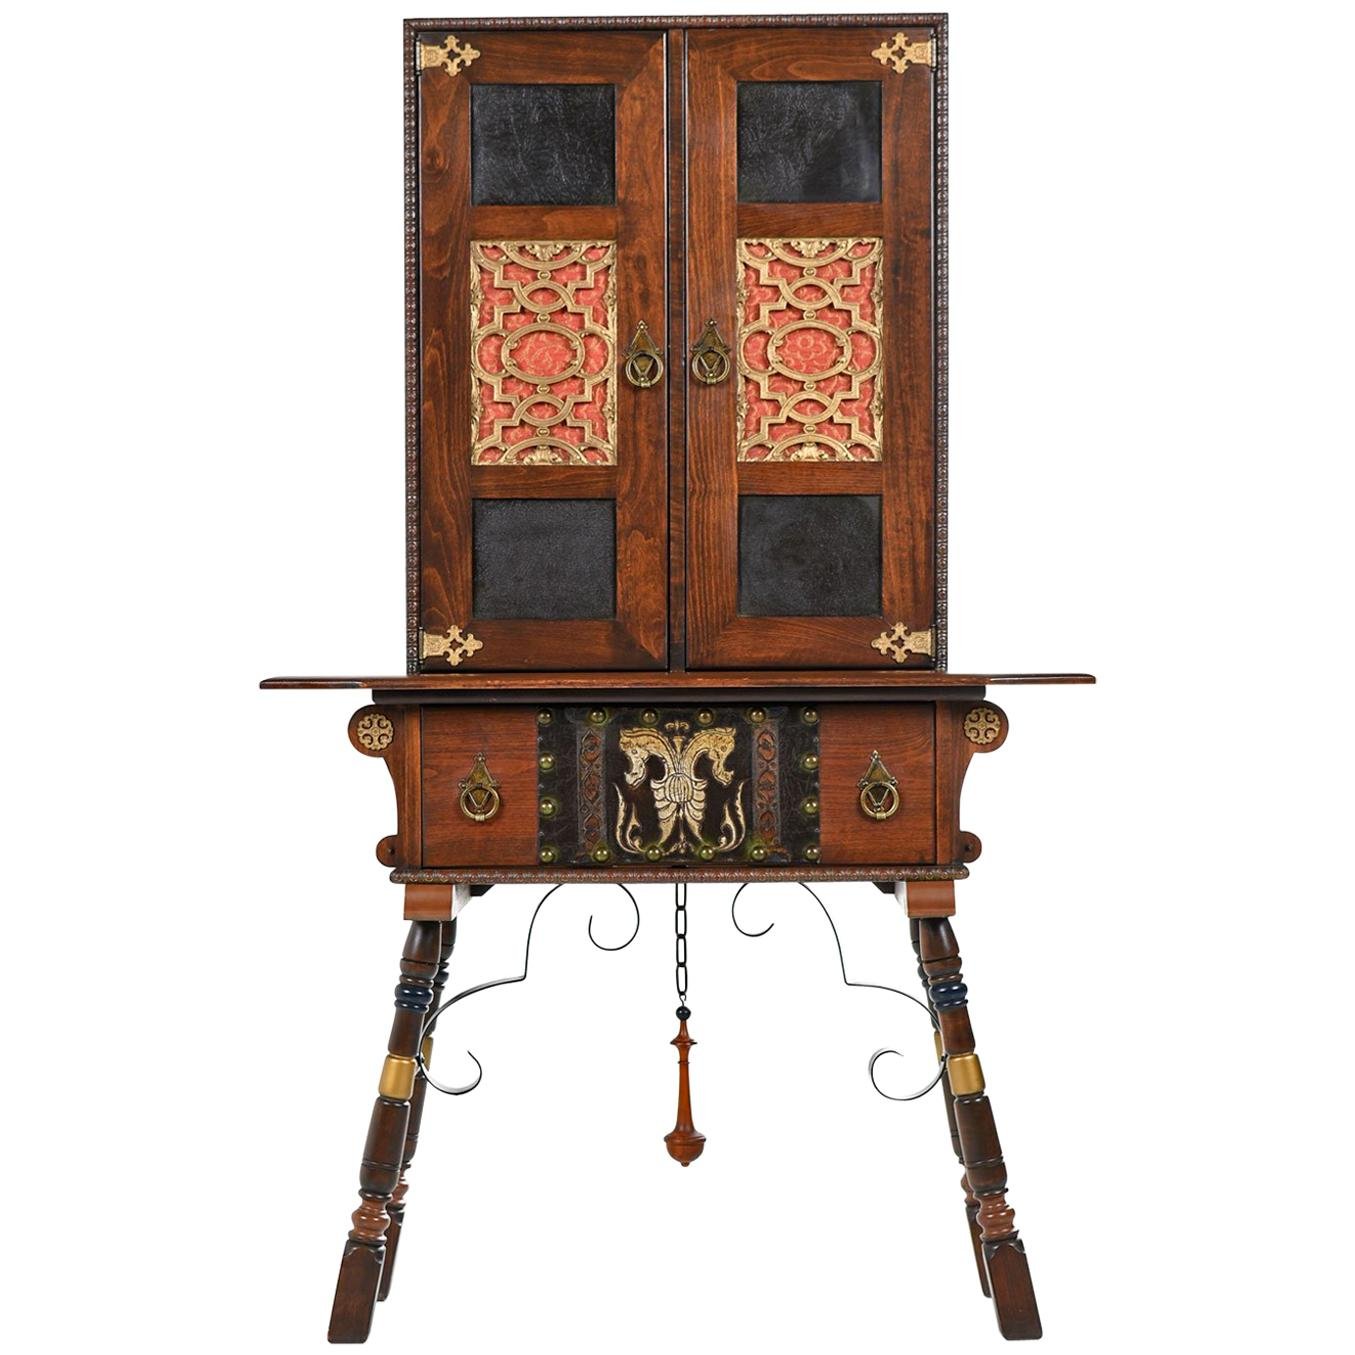 - Gothic Revival Furniture - 582 For Sale At 1stdibs